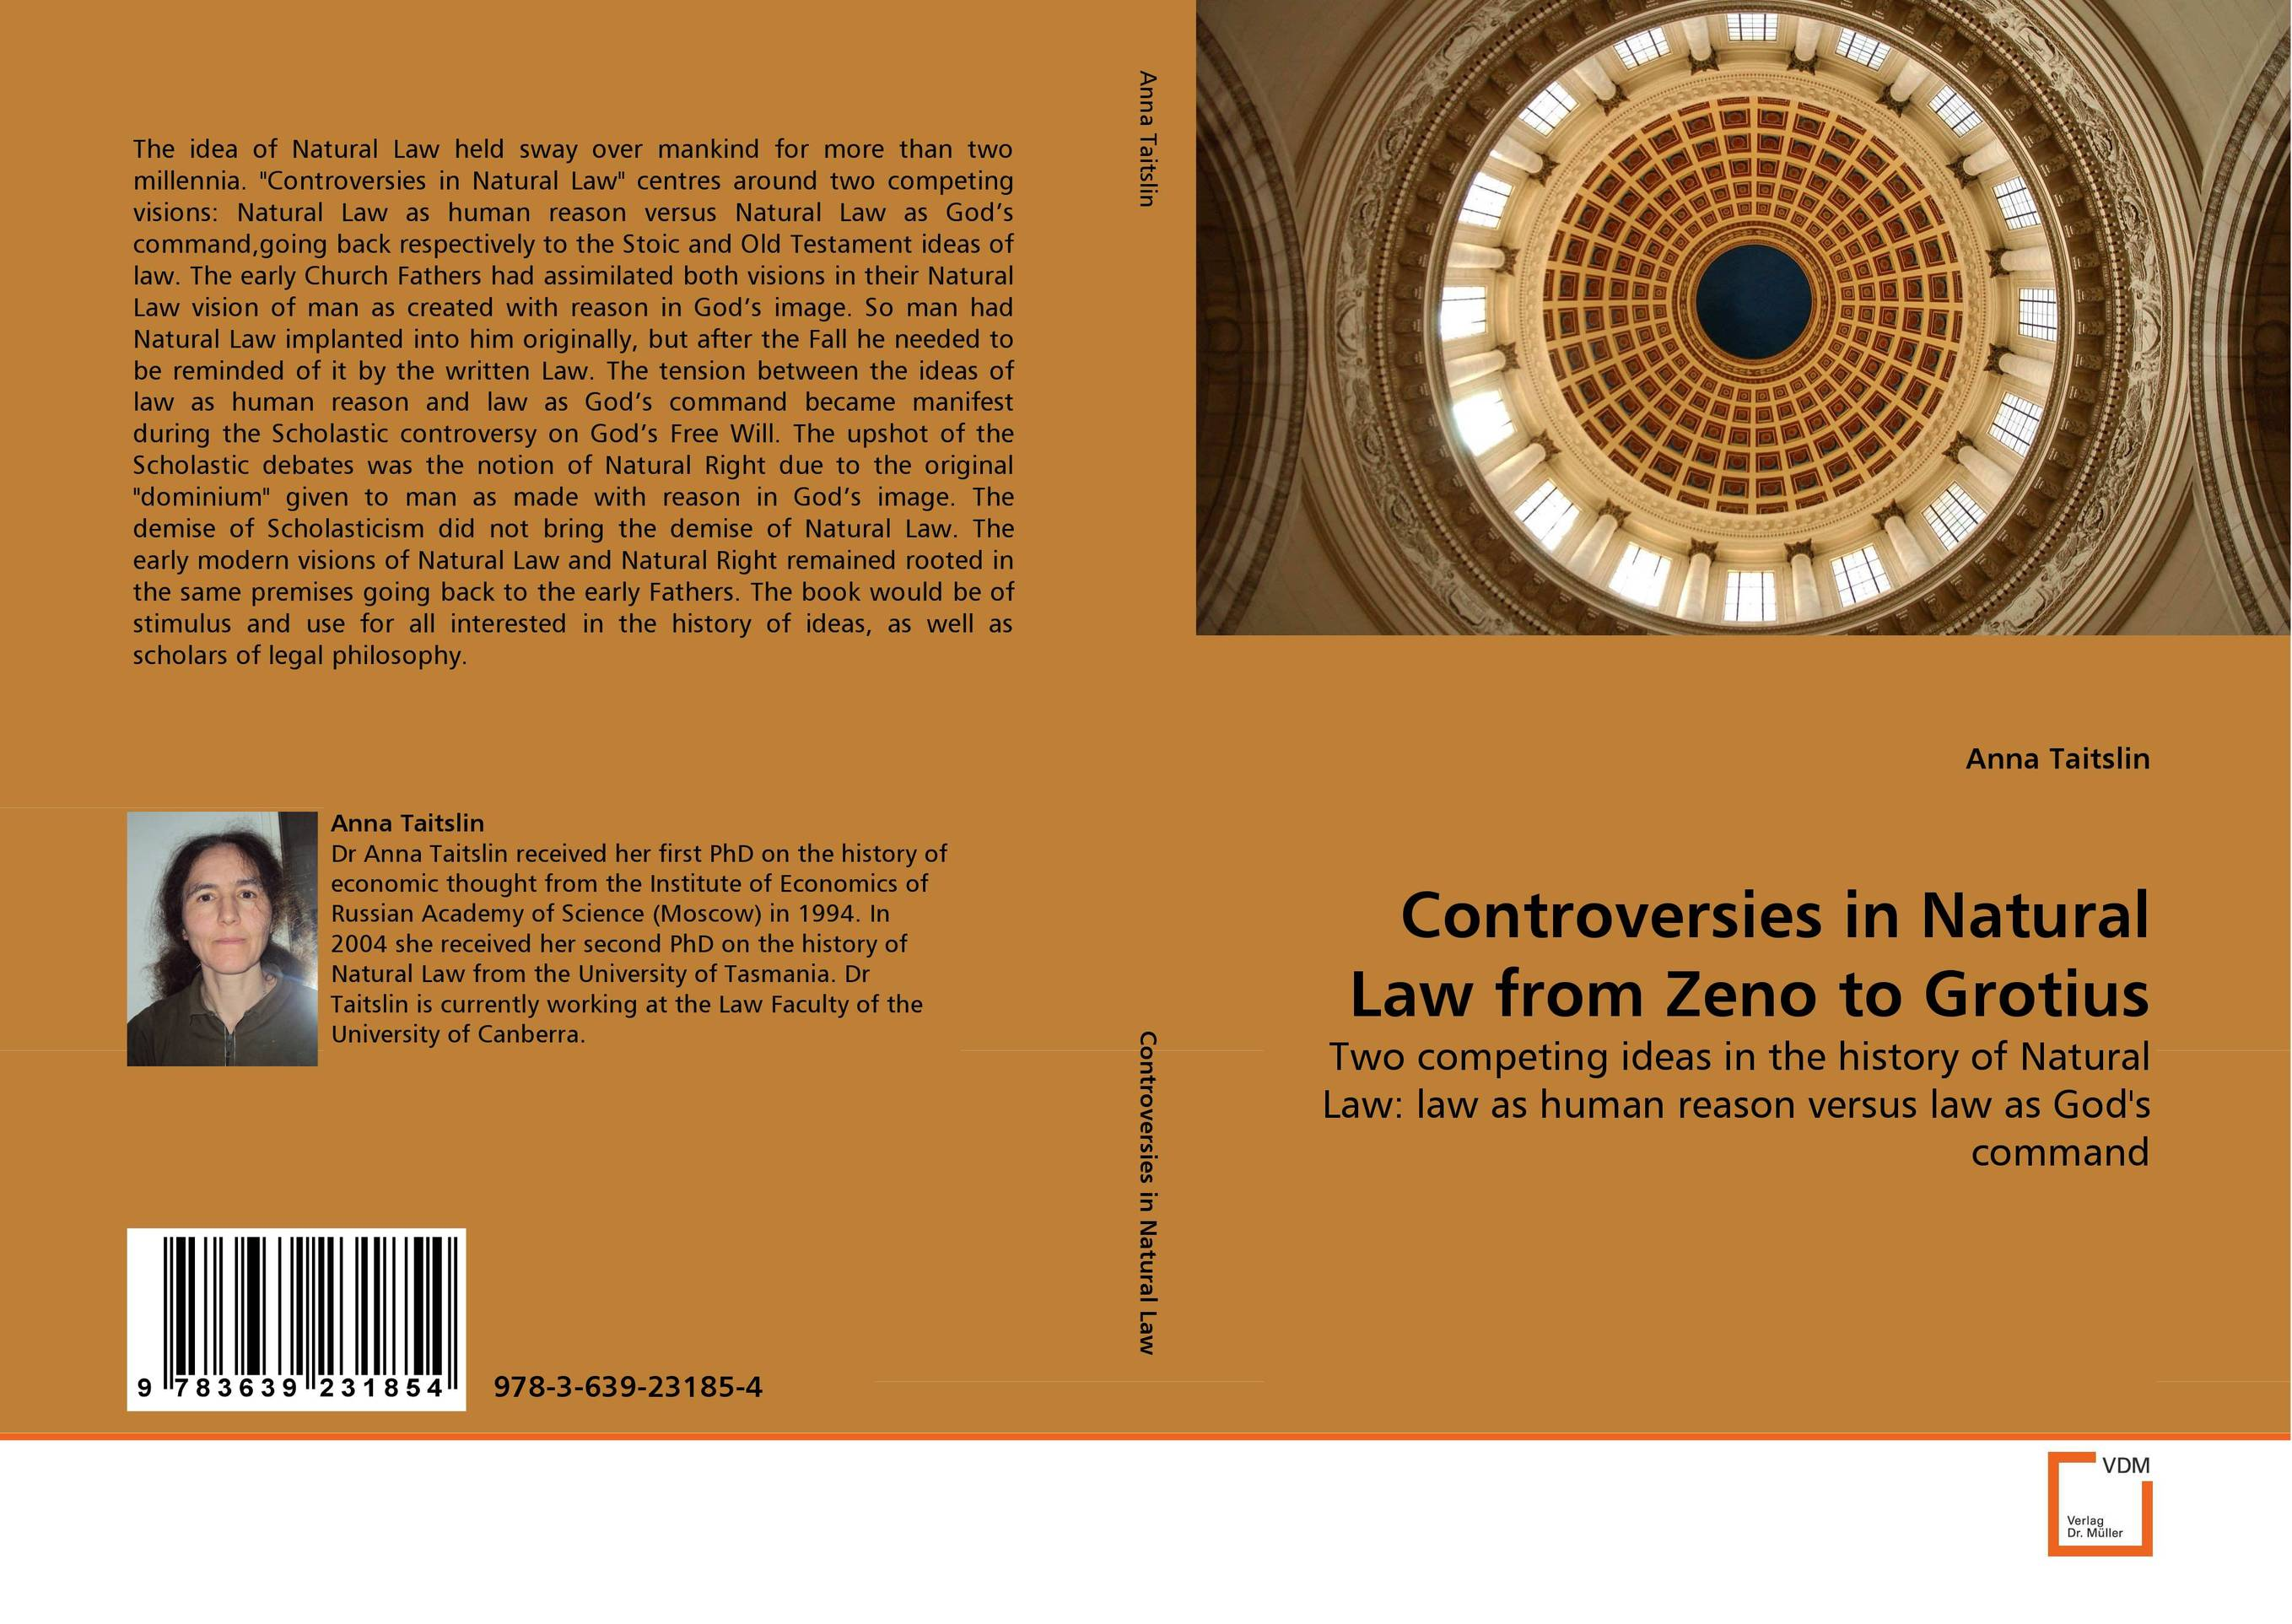 Controversies in Natural Law from Zeno to Grotius sola scriptura benedict xvi s theology of the word of god